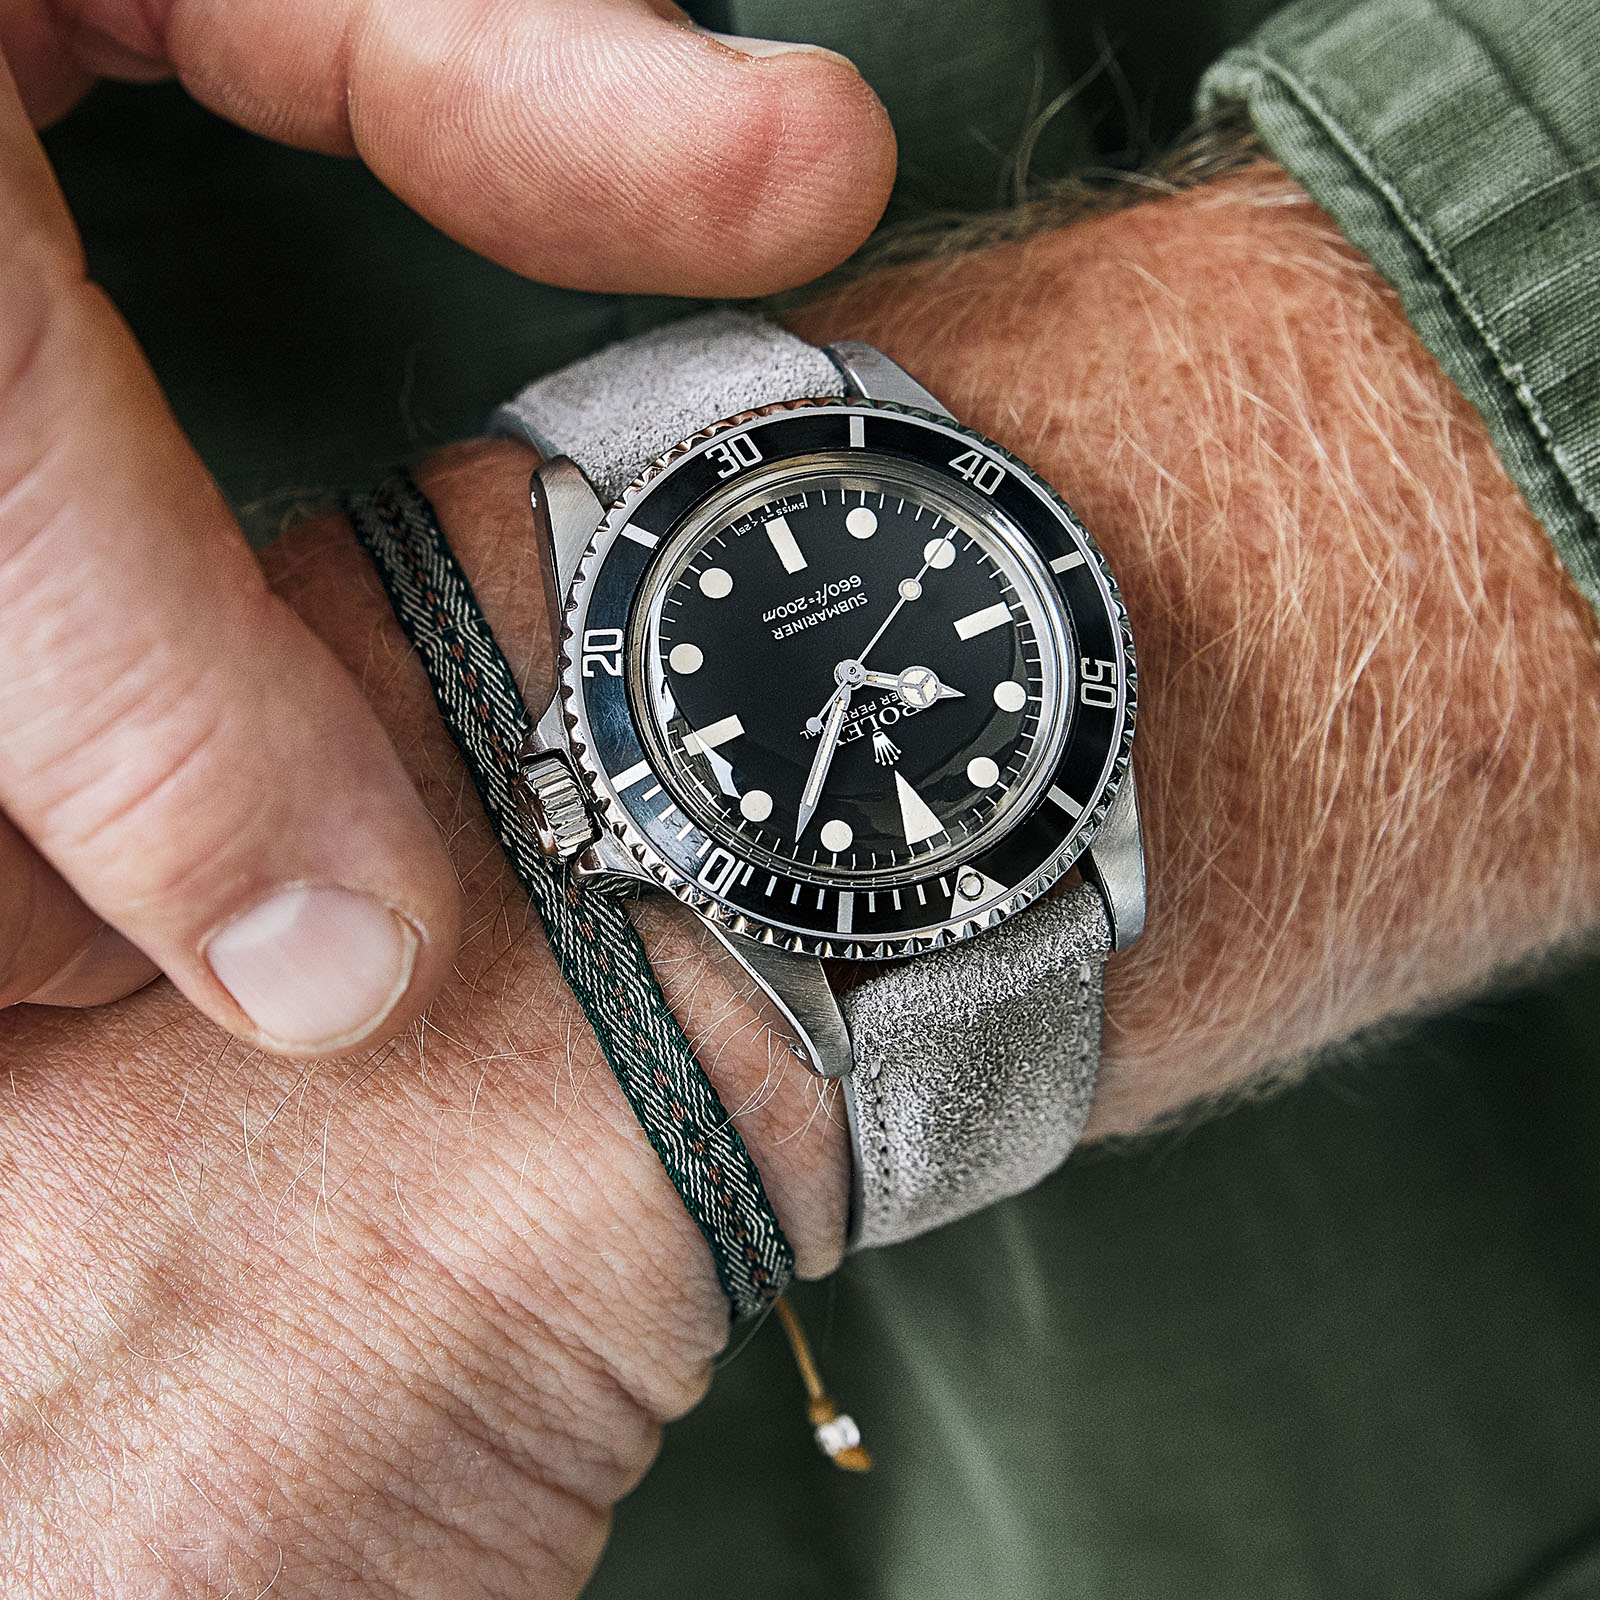 Bulang and Sons Strap Guide Rolex 5513 Submariner Black